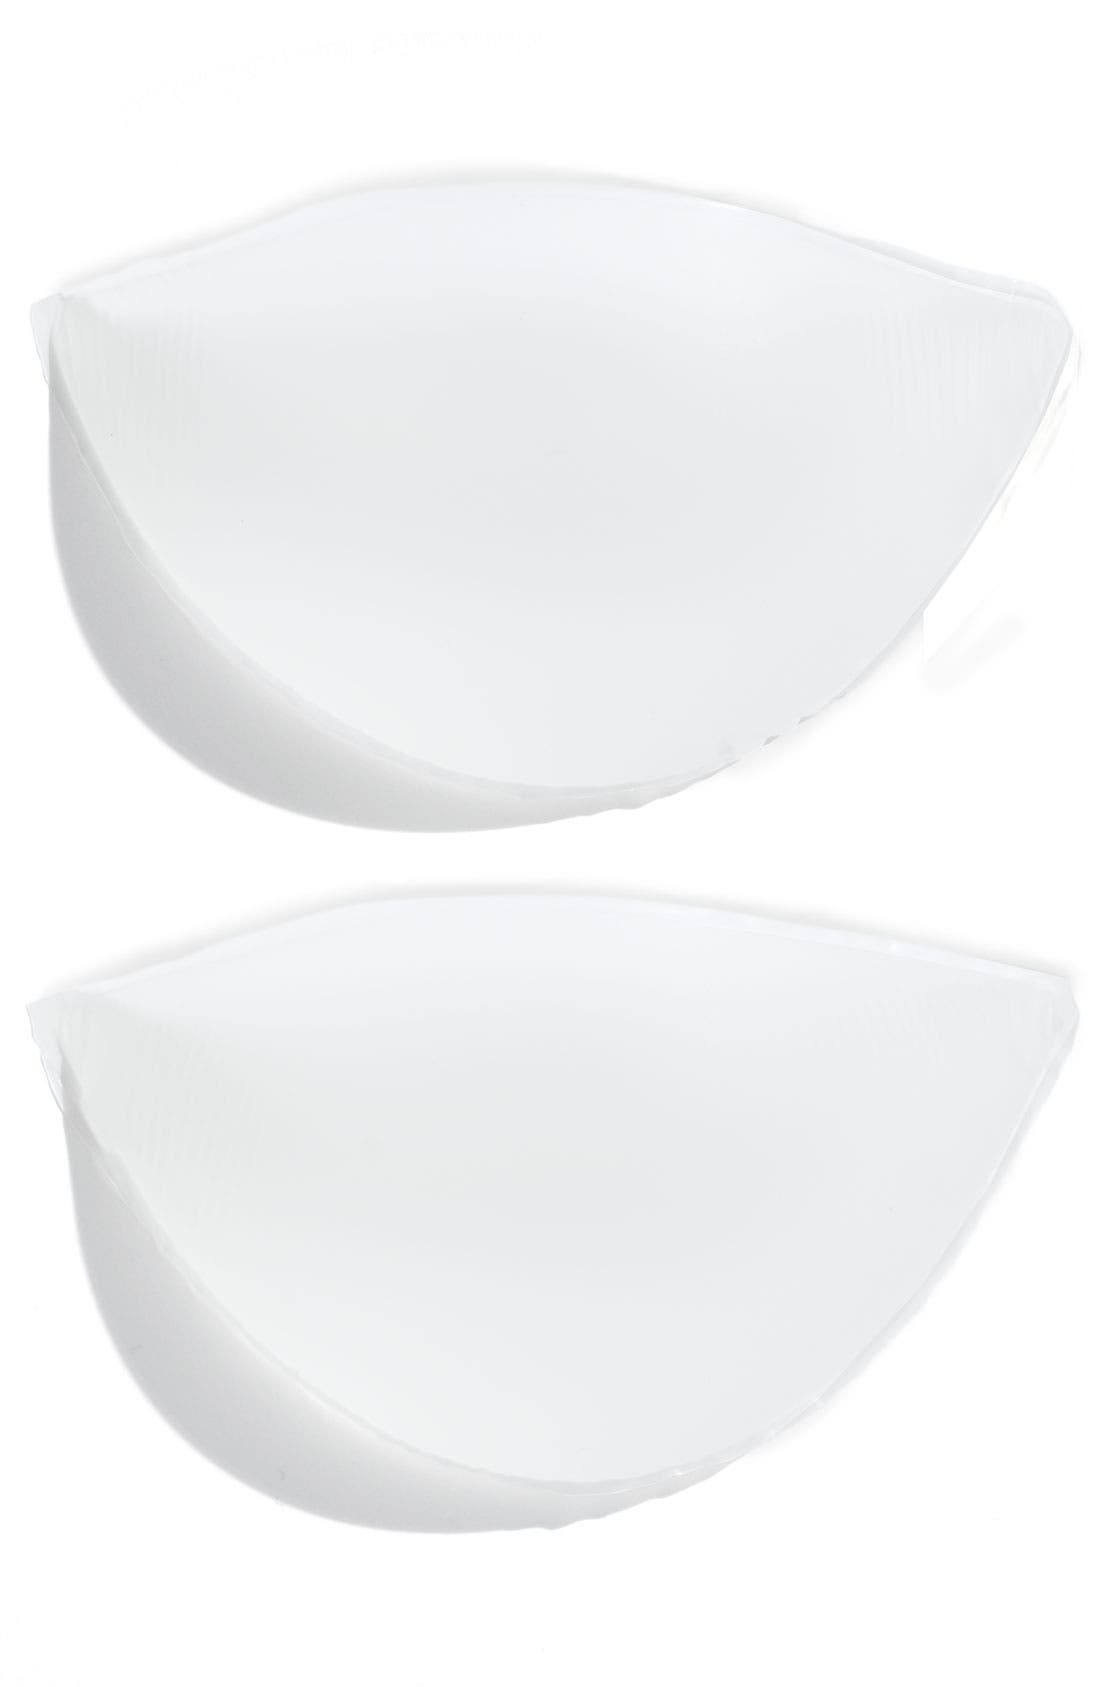 Main Image - Nordstrom Lingerie 'NO84787' Push-Up Gel Pads